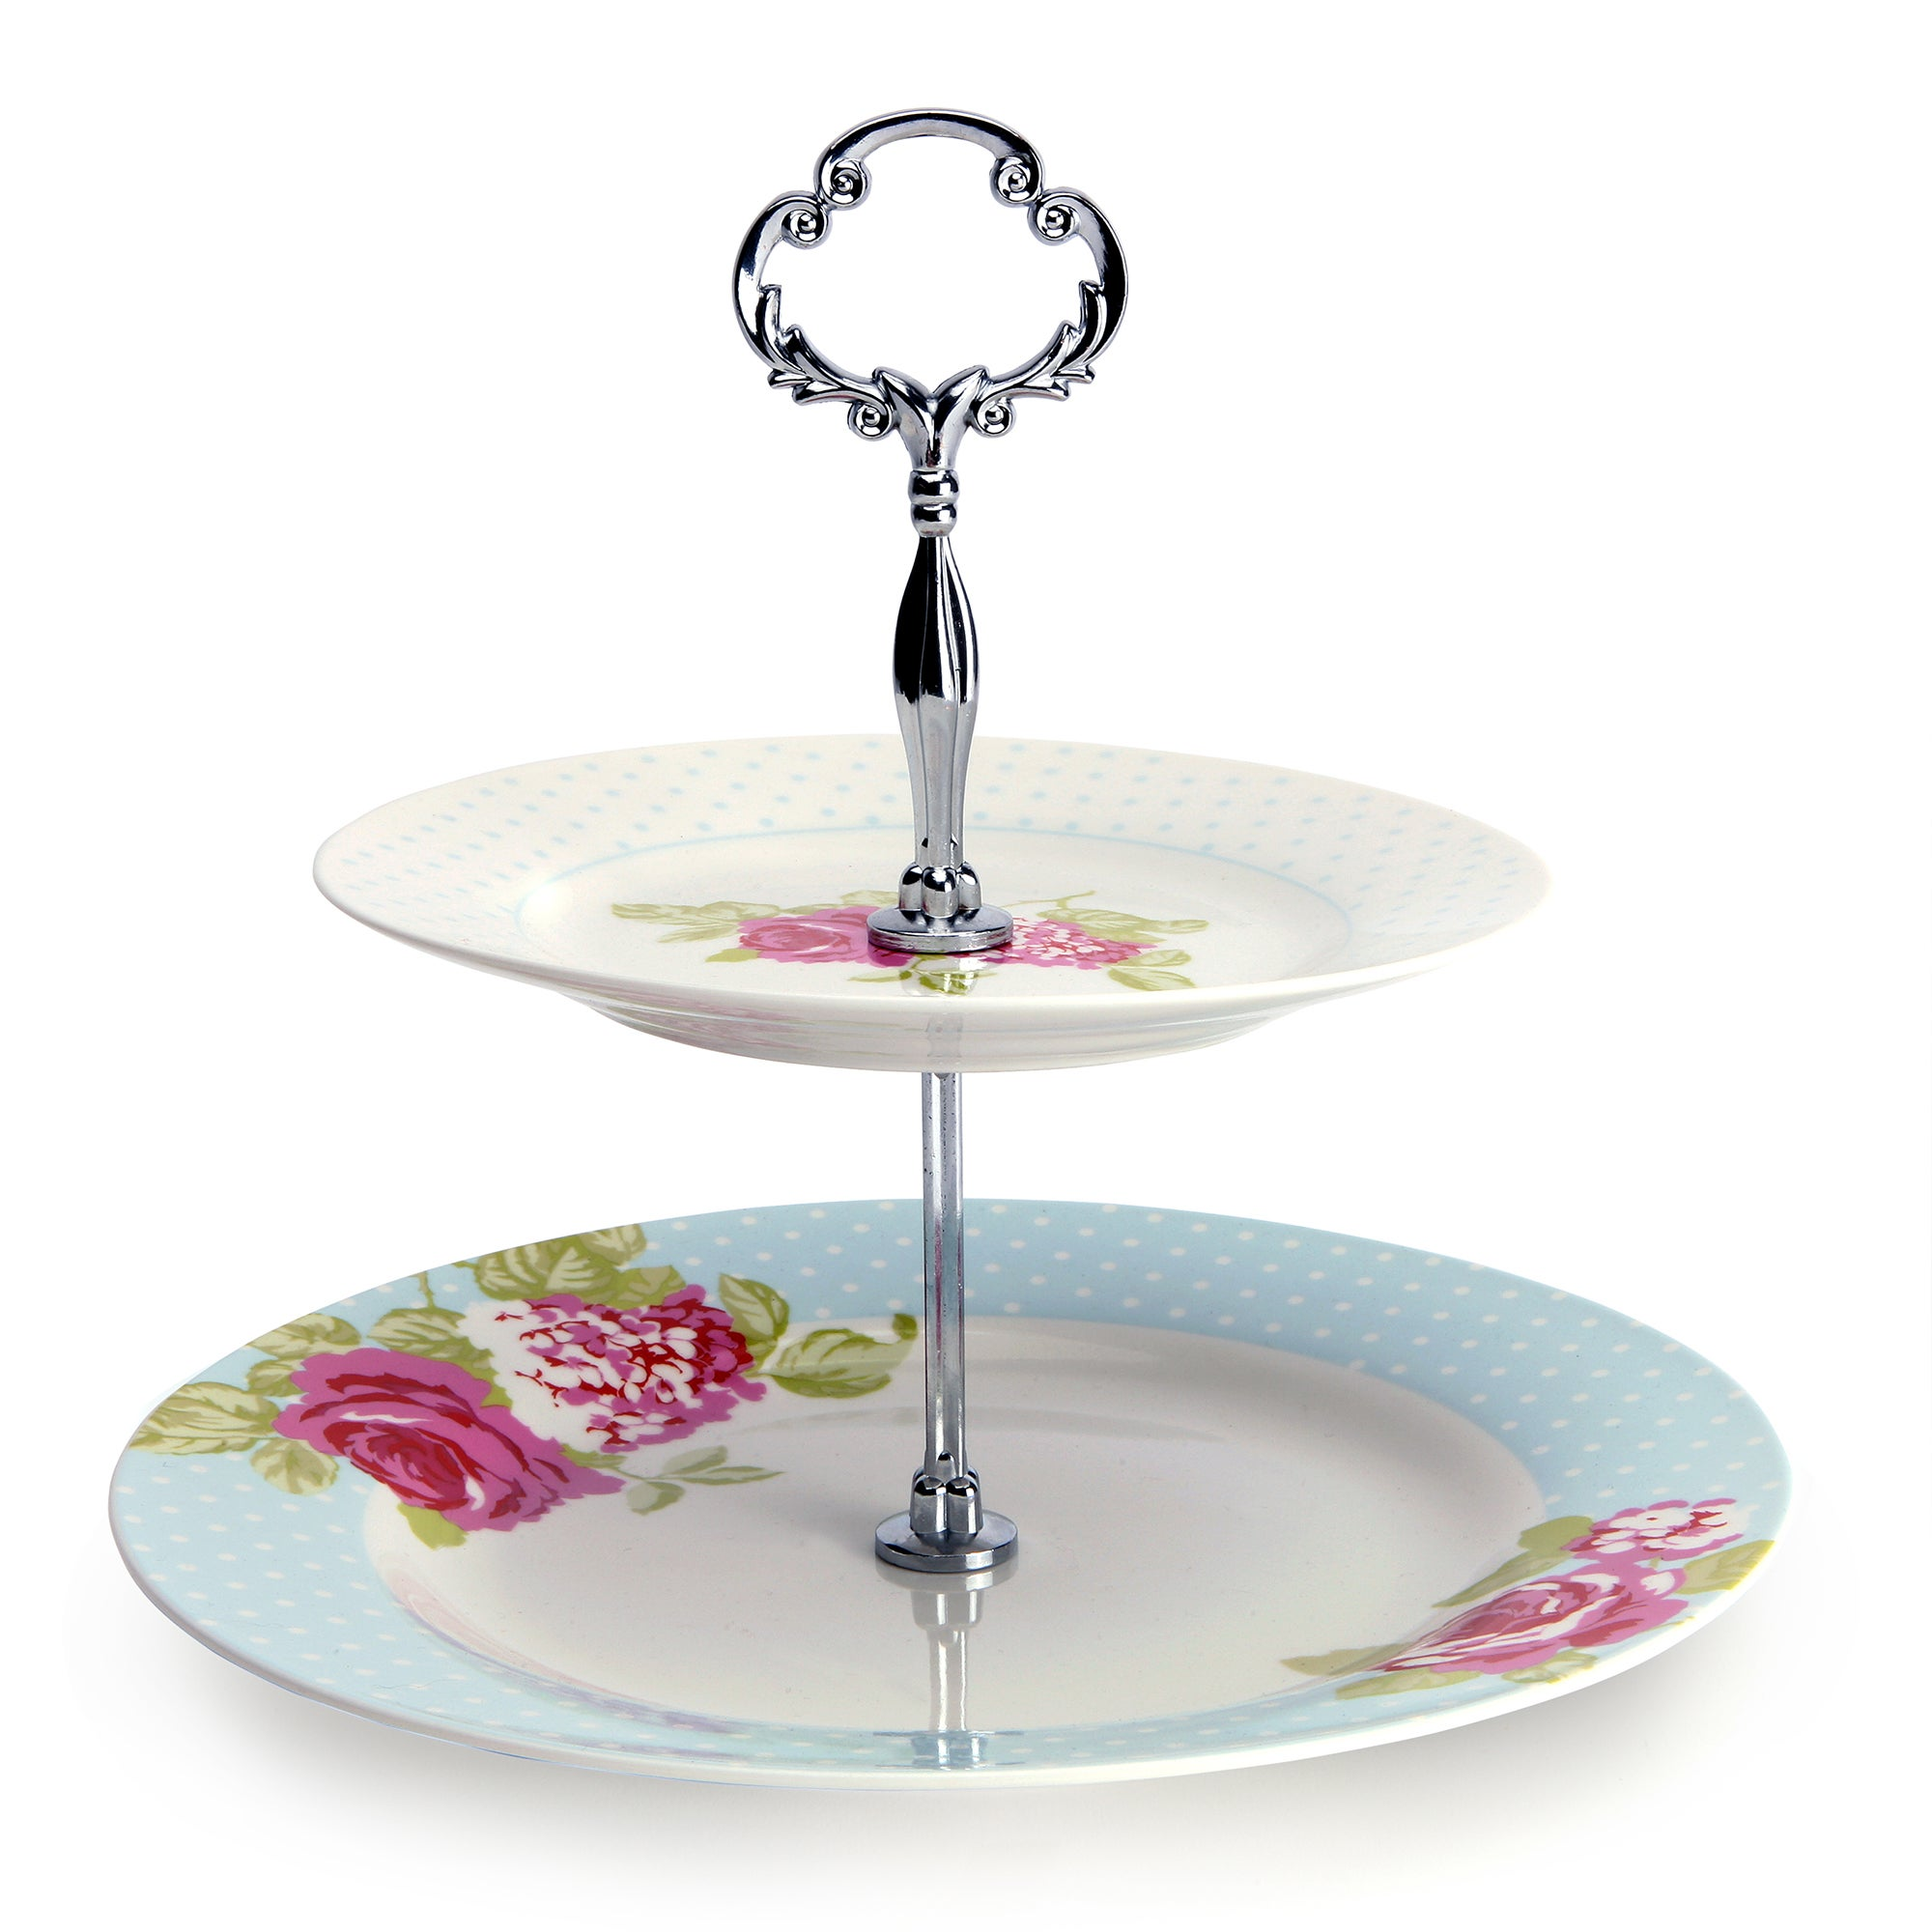 Rose and Ellis Clarendon Collection Cake Stand